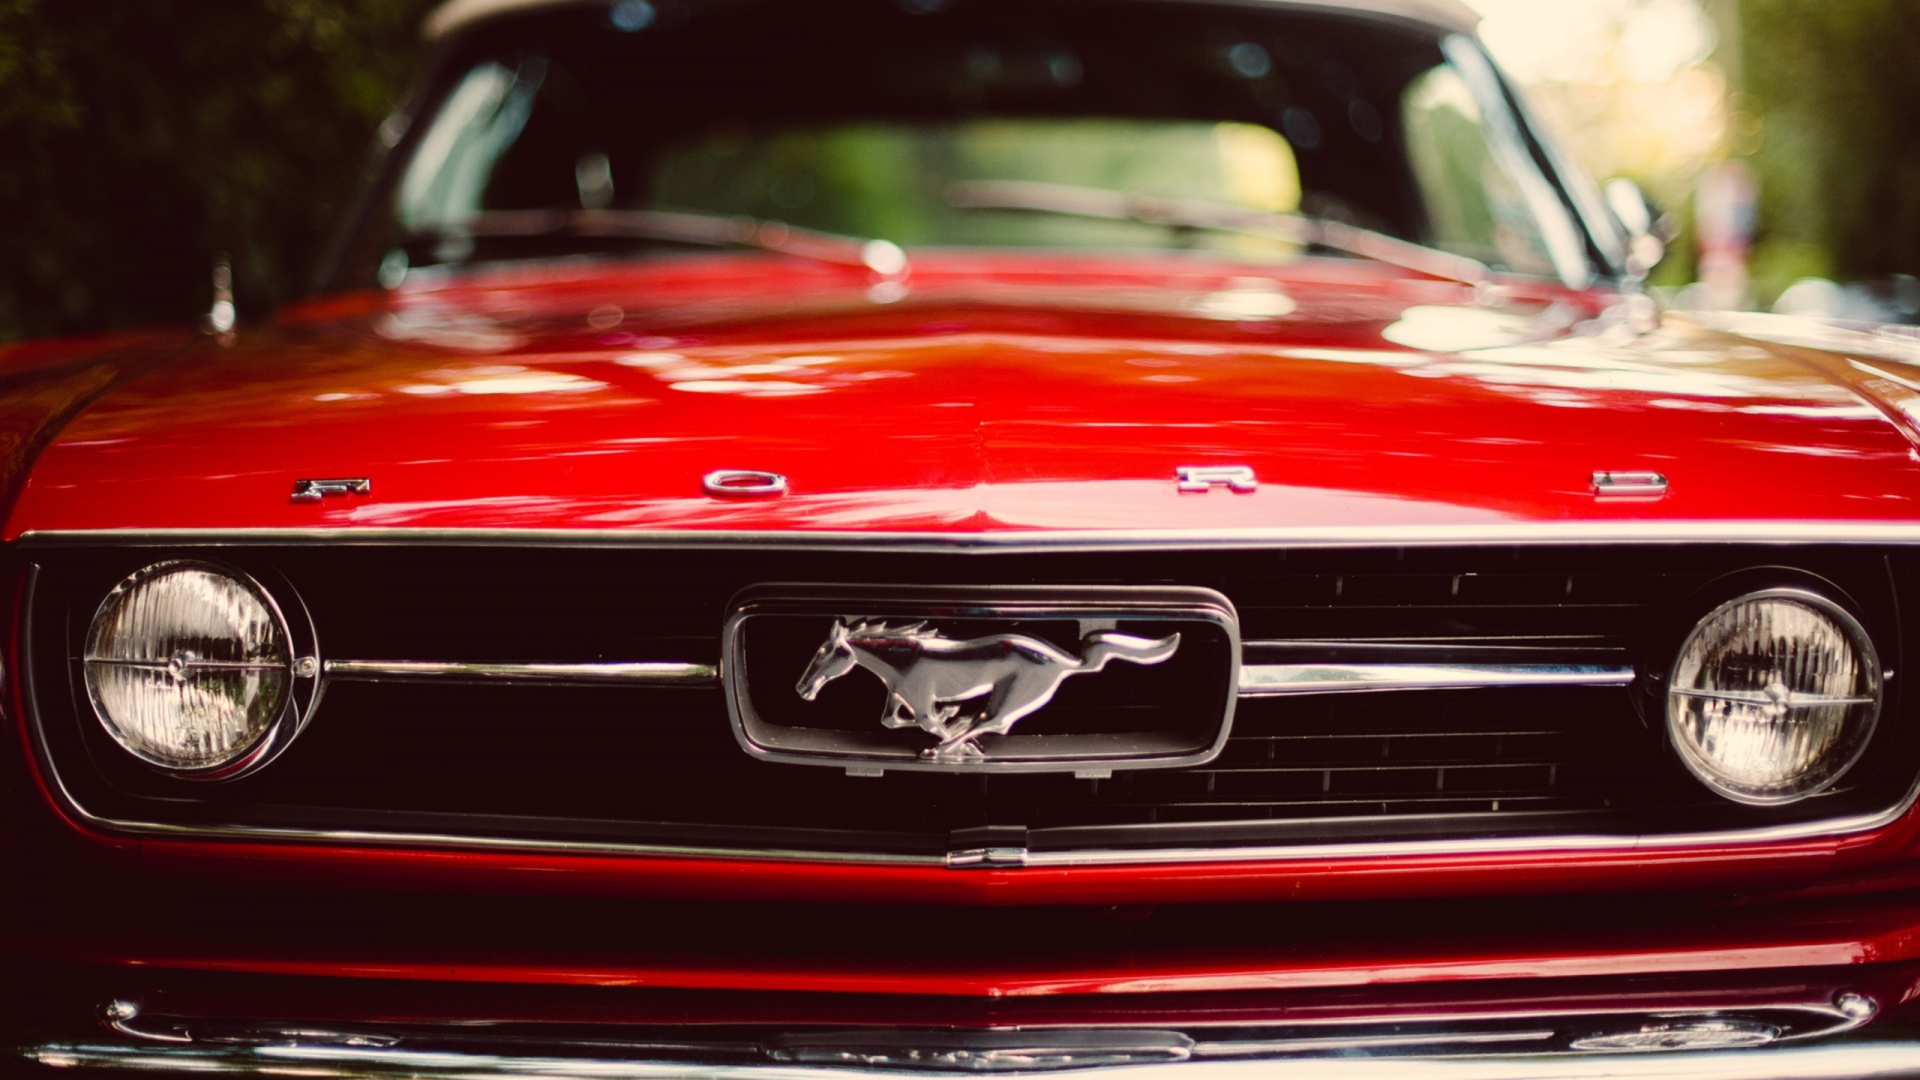 Download Wallpaper 1920x1080 Ford Mustang Redder Auto Full Hd